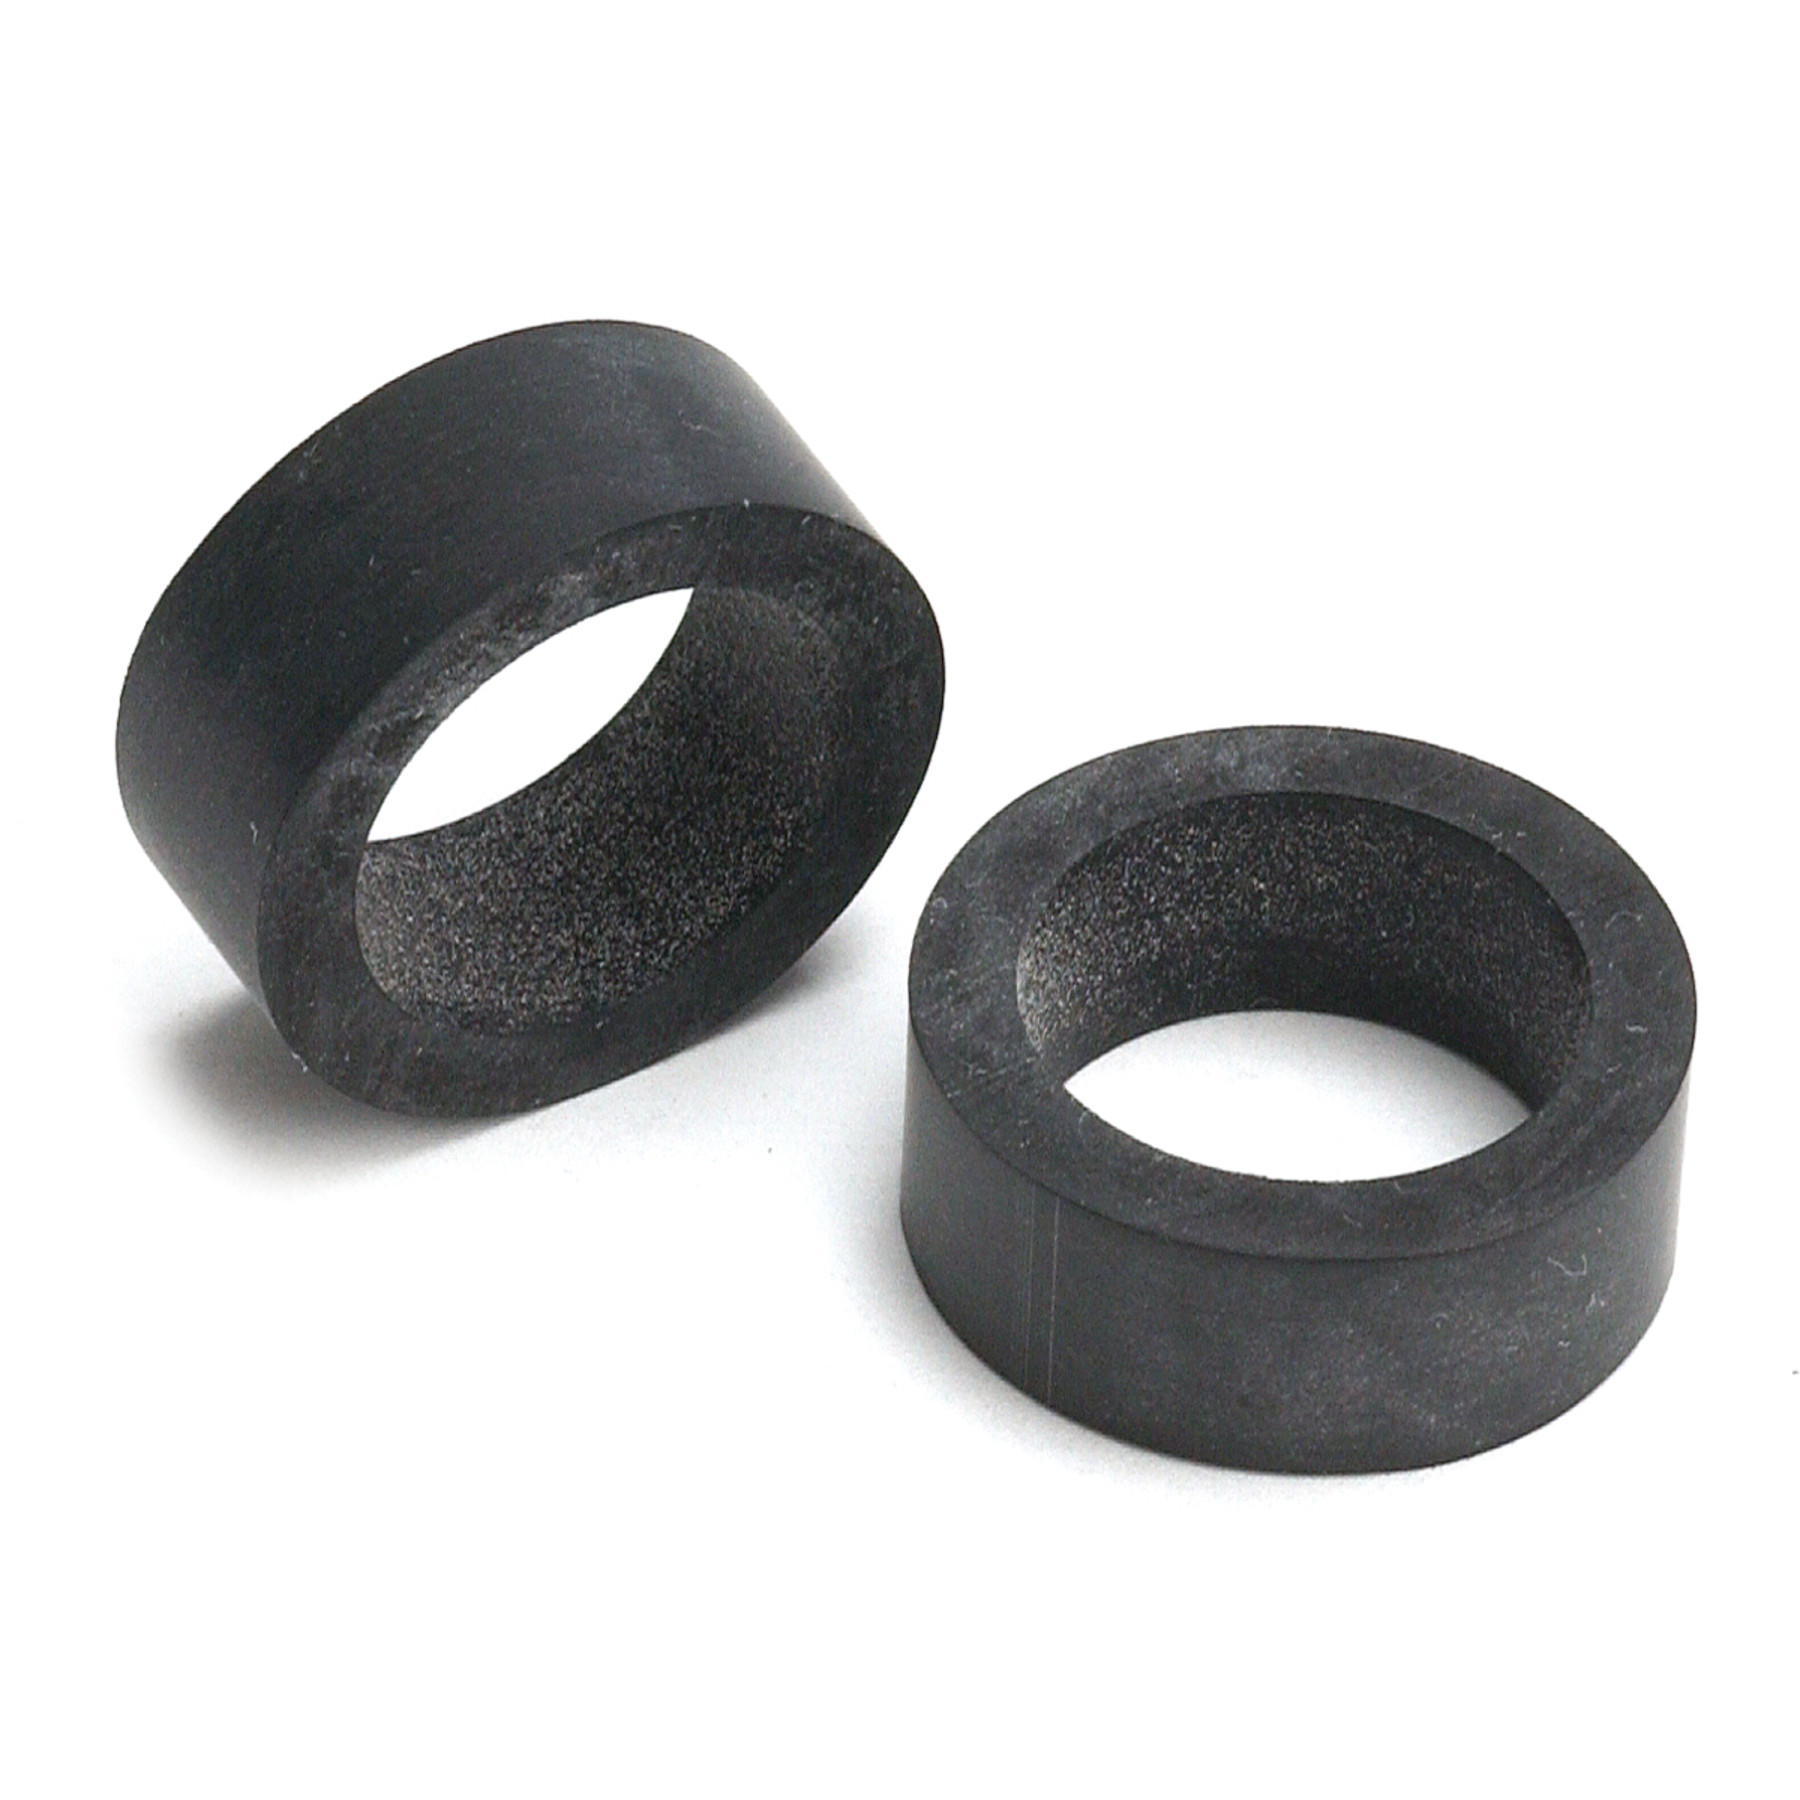 Steamaster HPJ-2S Sight Glass Rubber Gaskets-Pack of 2 | OttoFrei.com